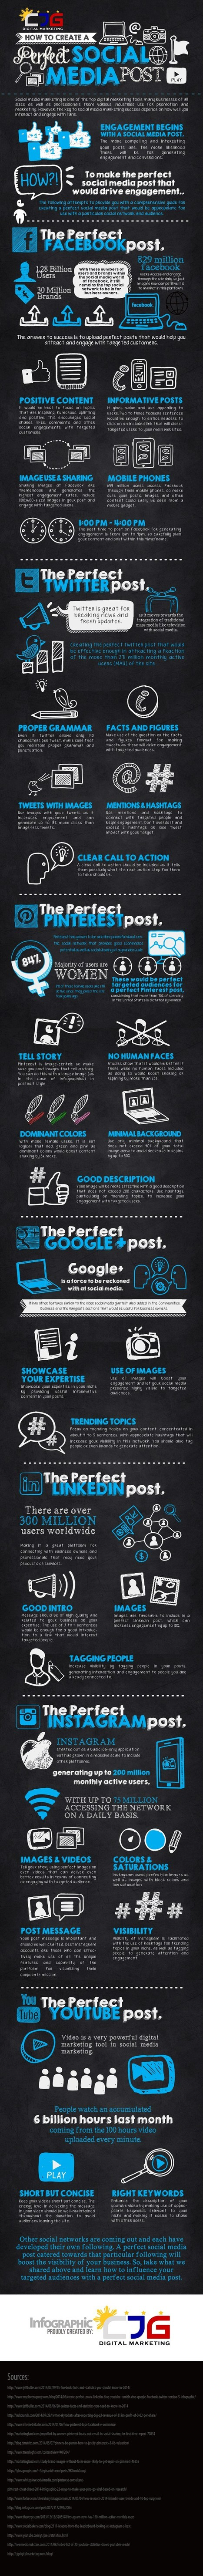 Facebook, Twitter, Pinterest, Instagram: How to Write the Perfect Post | Social Media e Innovación Tecnológica | Scoop.it